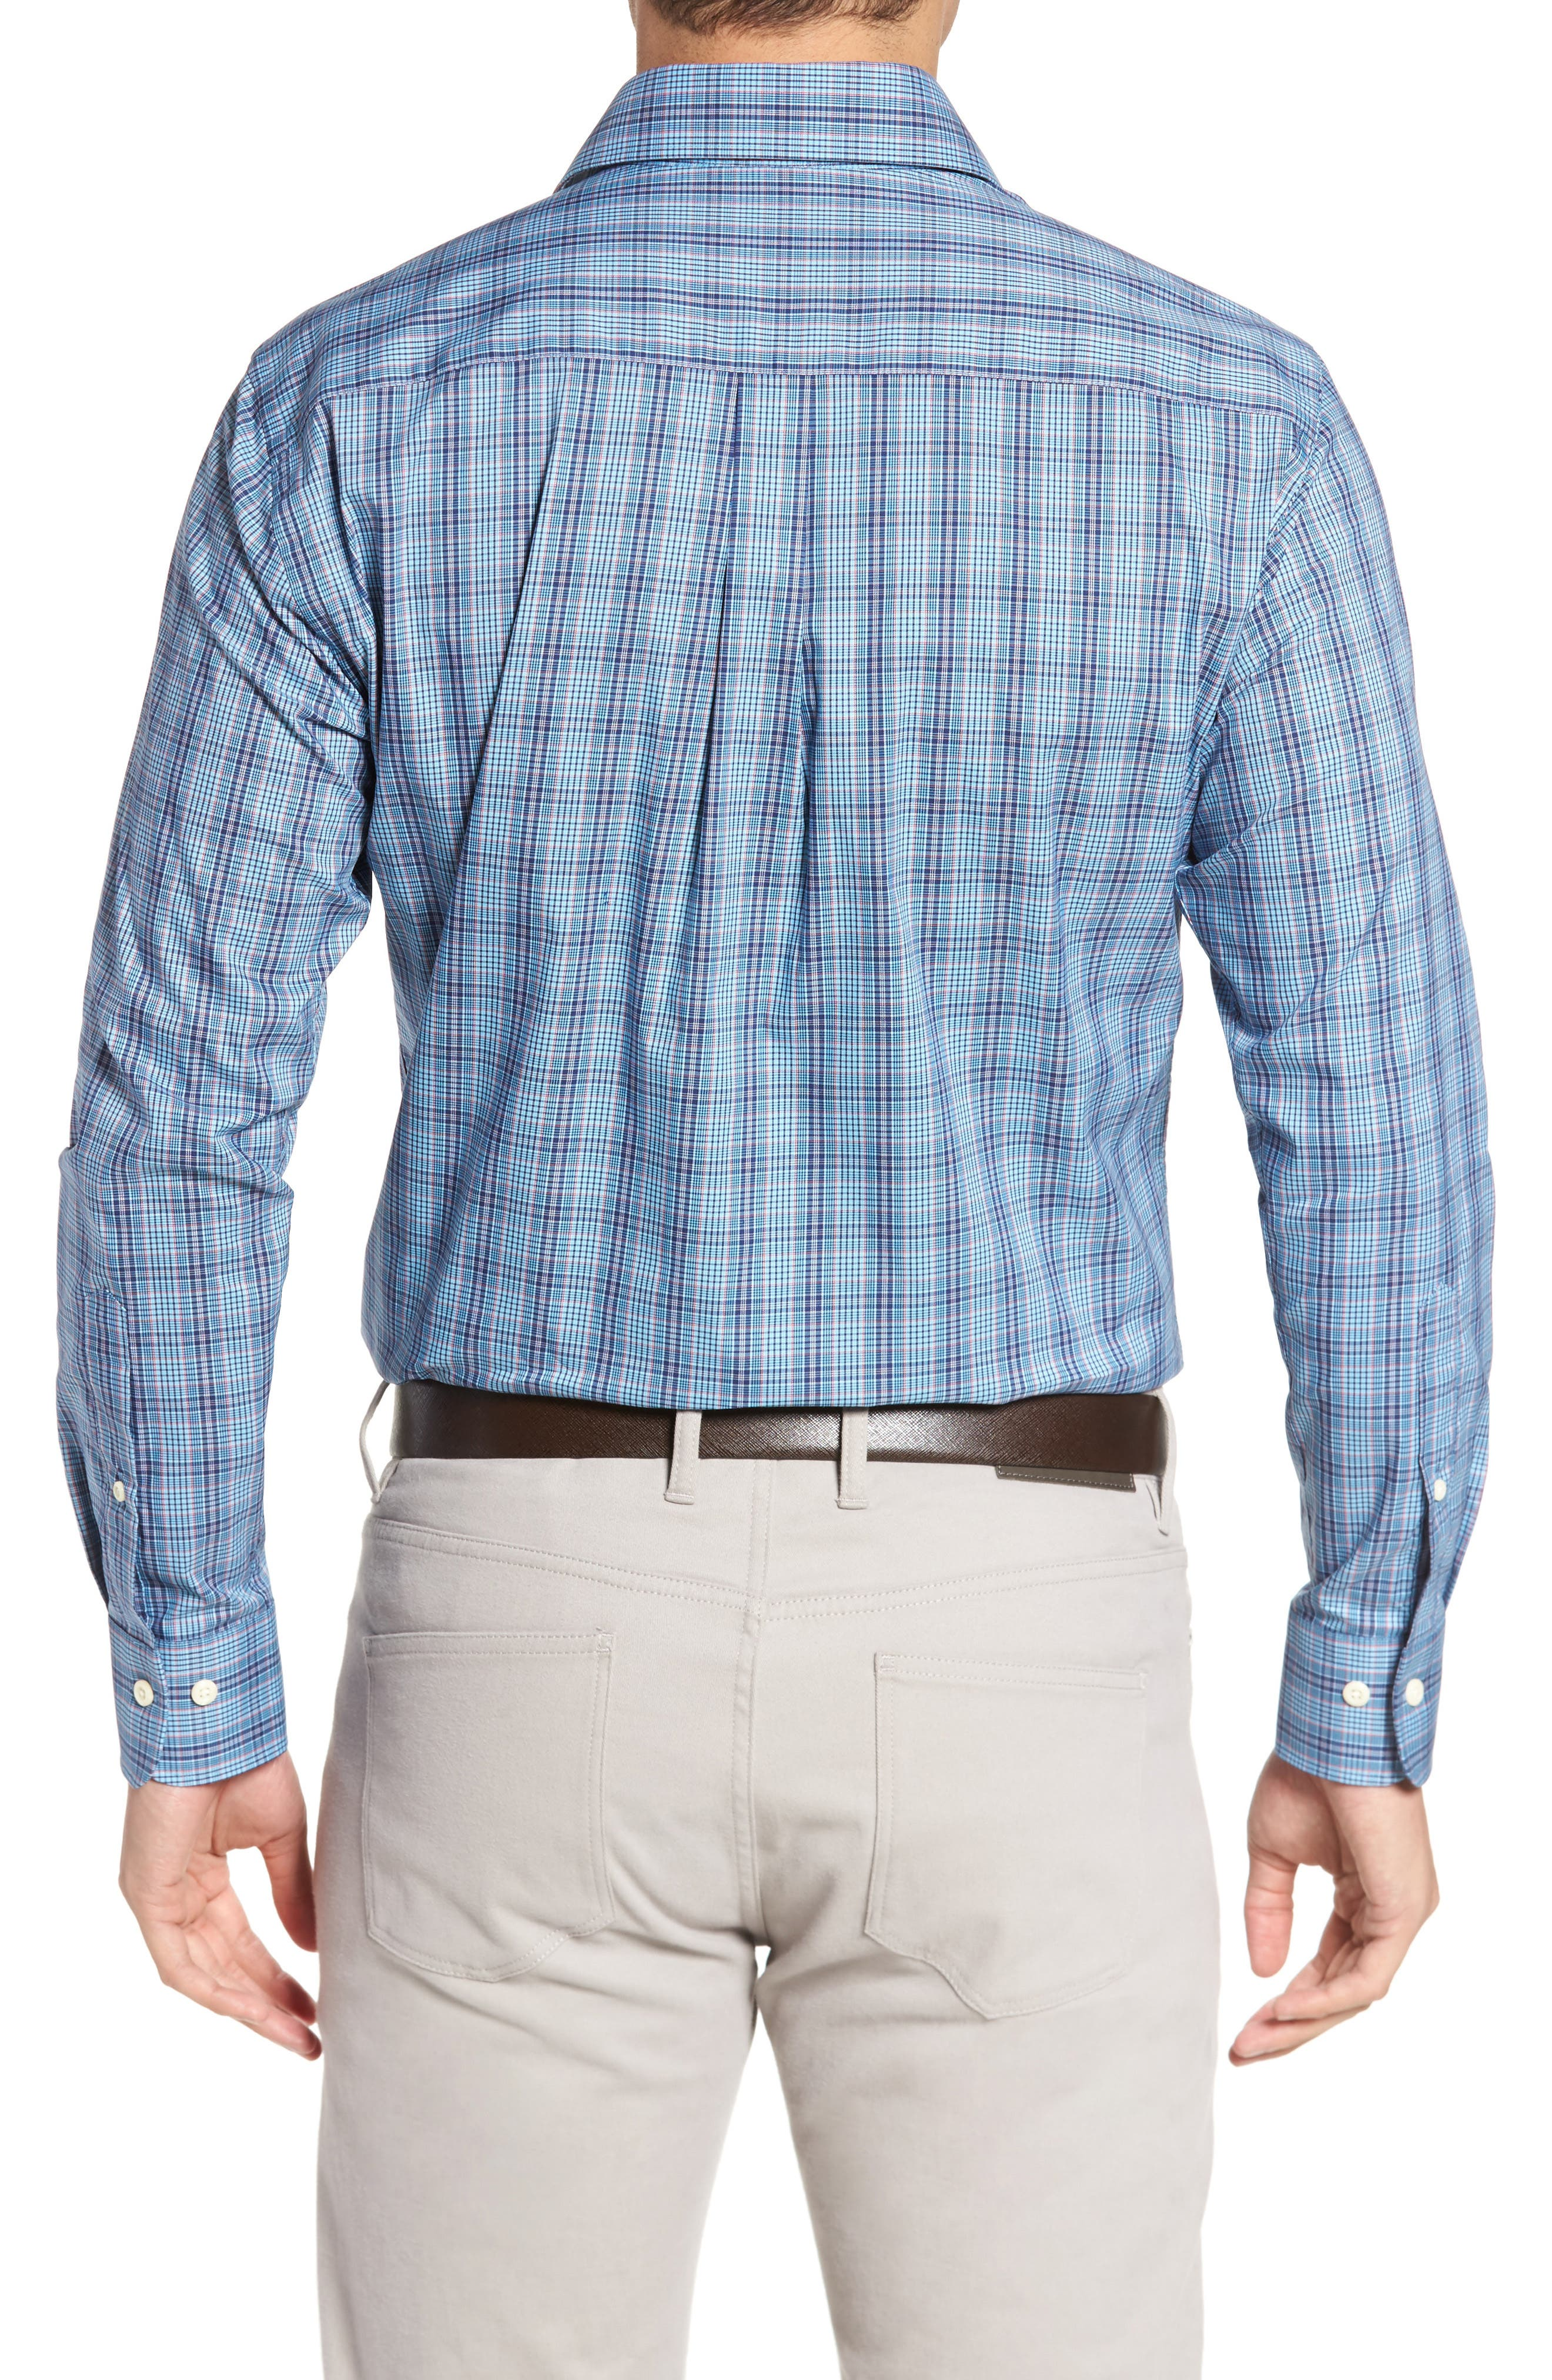 Classic Fit Crown Comfort Homestead Glen Sport Shirt,                             Alternate thumbnail 2, color,                             951